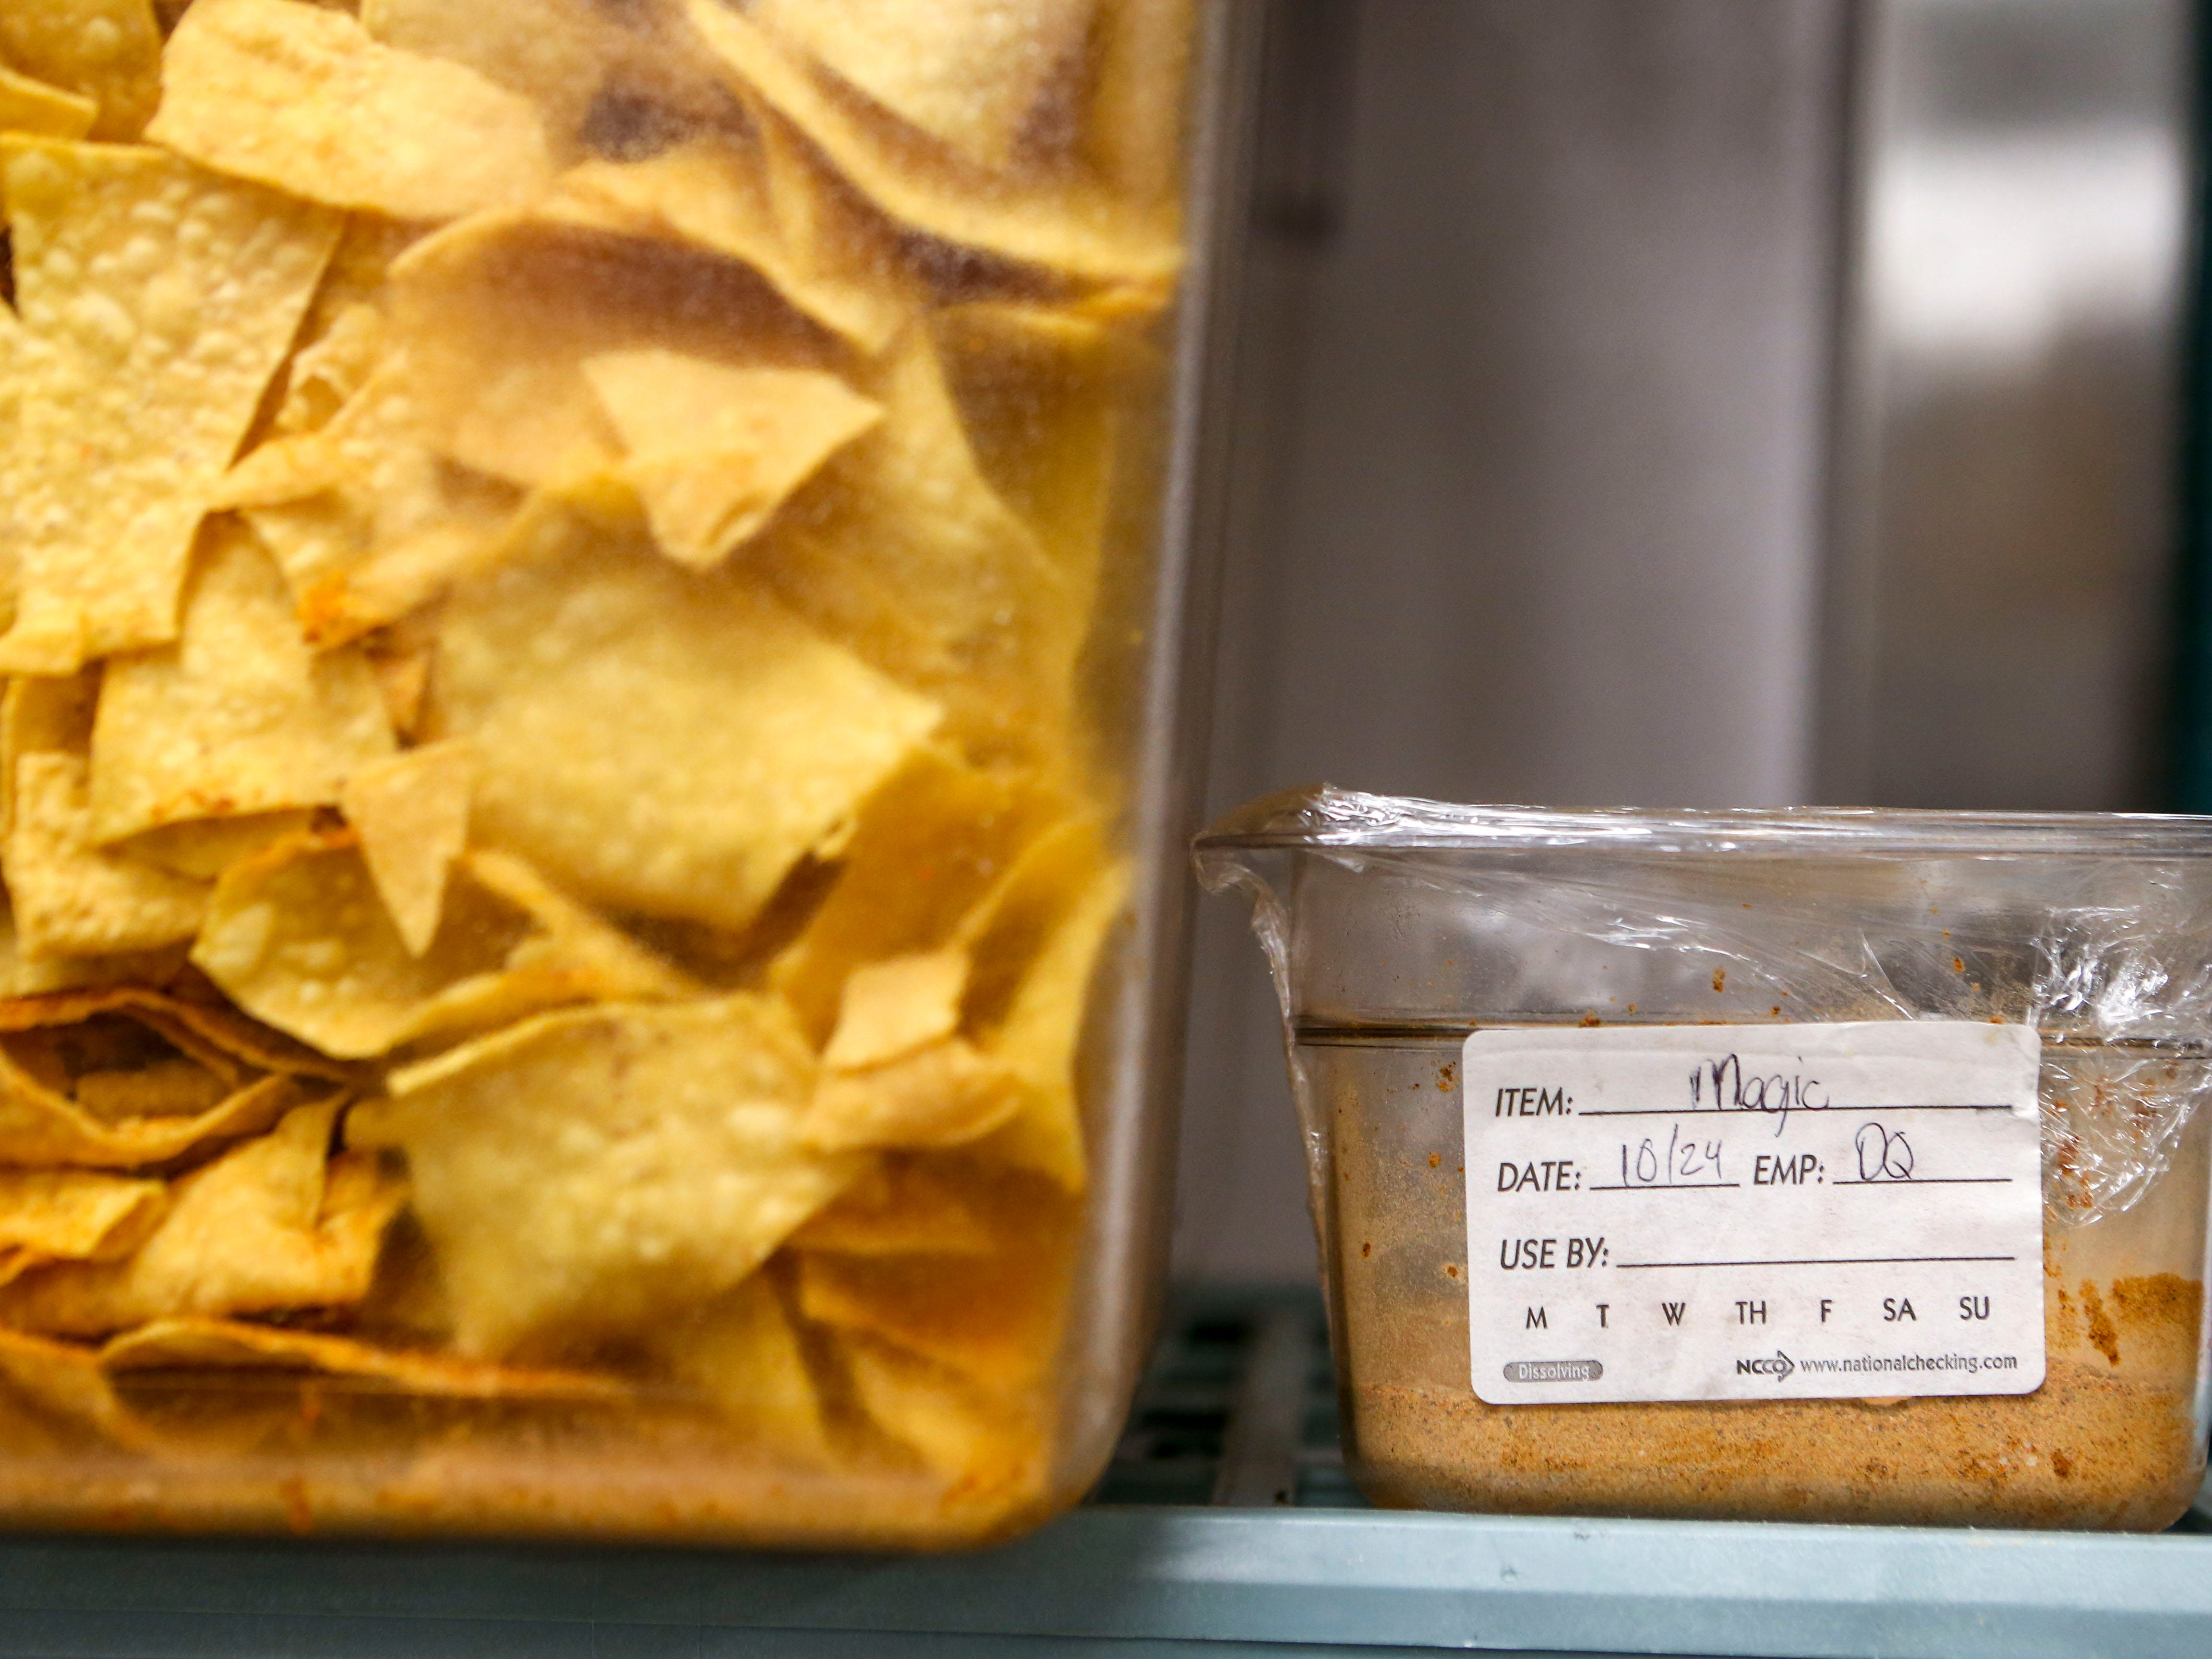 """""""Magic"""" seasoning sits on the shelf next to tubs of chips during the soft opening at Tacos 4 Life, a new restaurant in Jackson, Tenn., on Monday, Oct. 29, 2018."""